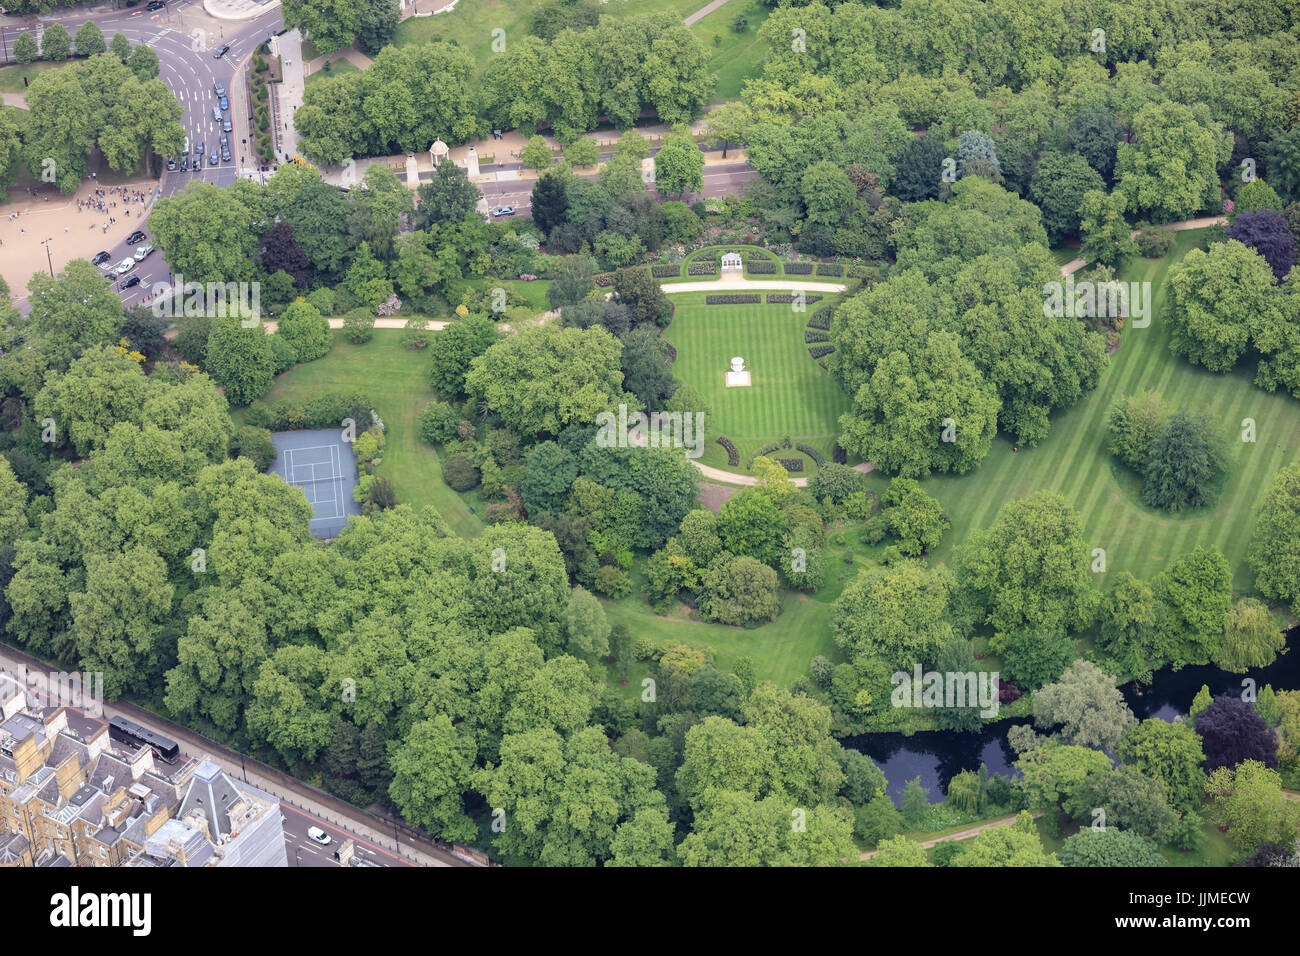 An aerial view of Buckingham Palace Gardens, with the Waterloo Vase visible on the lawn - Stock Image